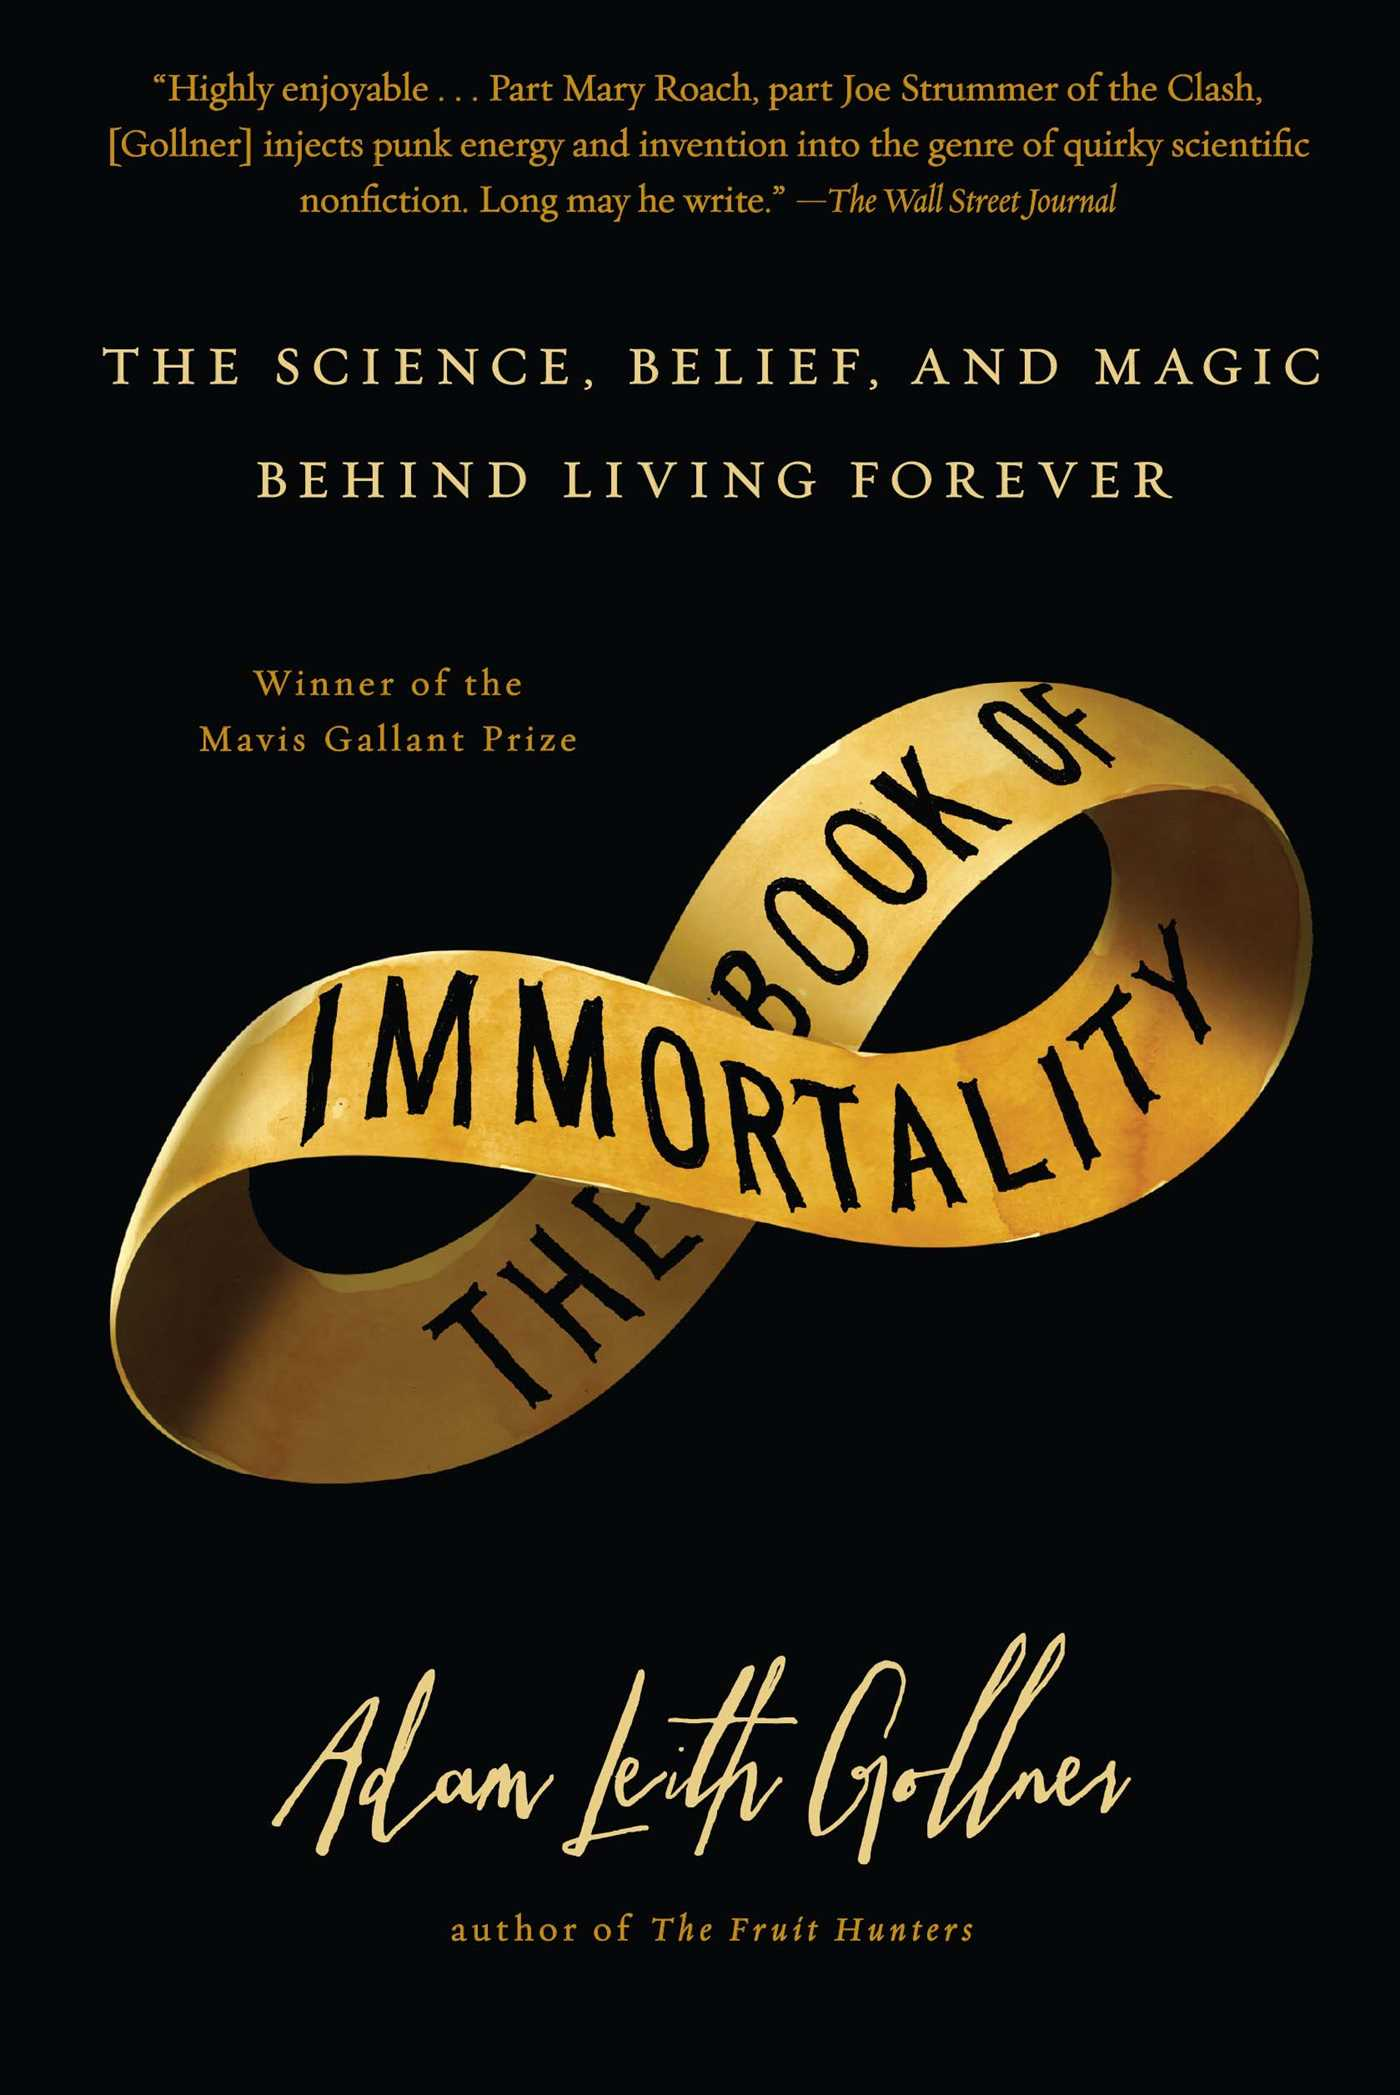 The book of immortality 9781439109434 hr